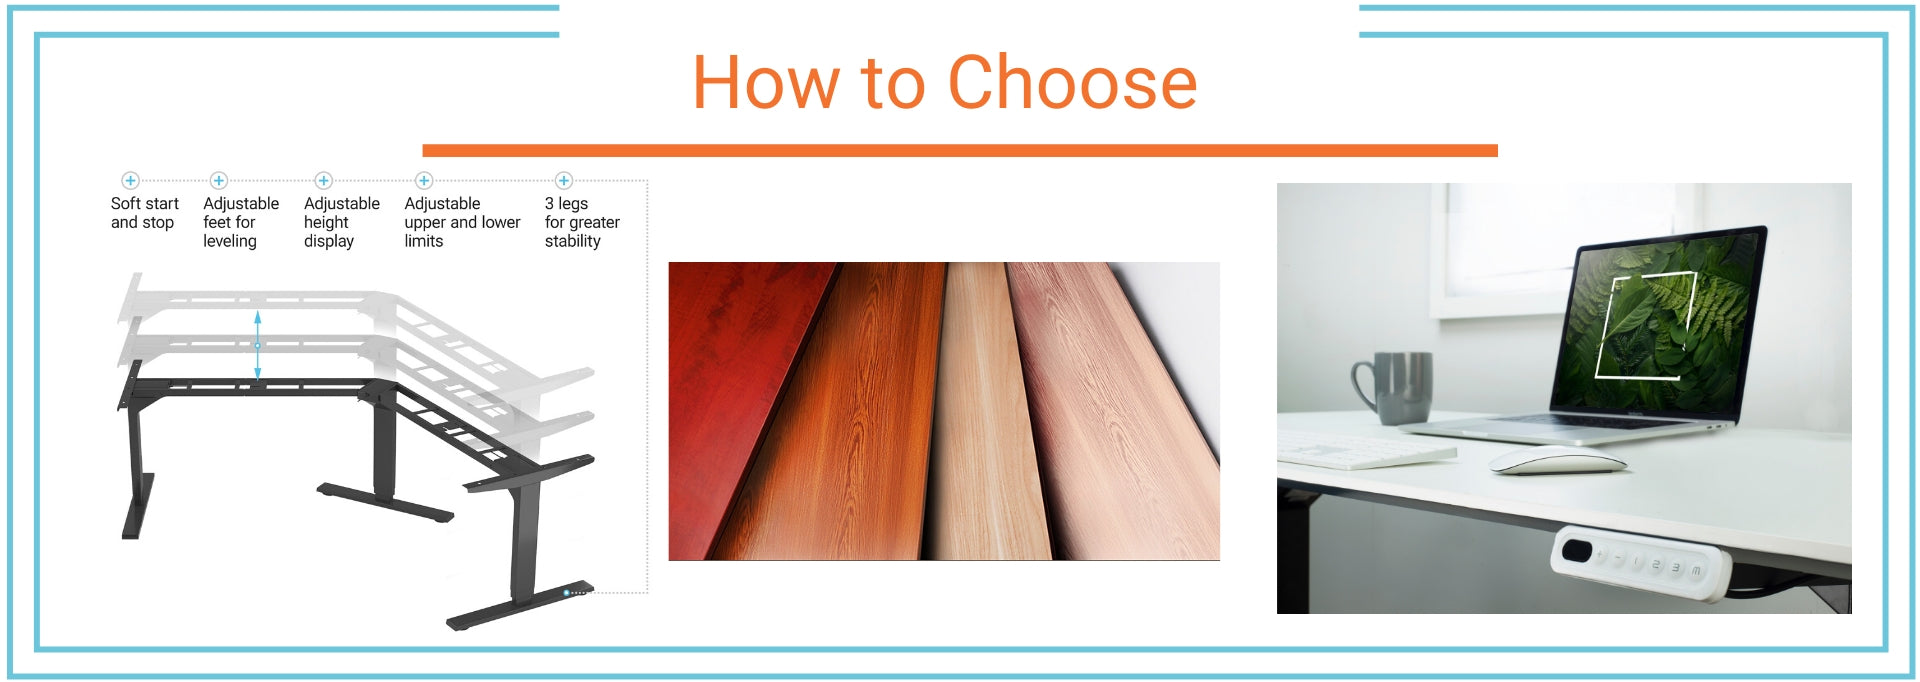 How to choose Table lift